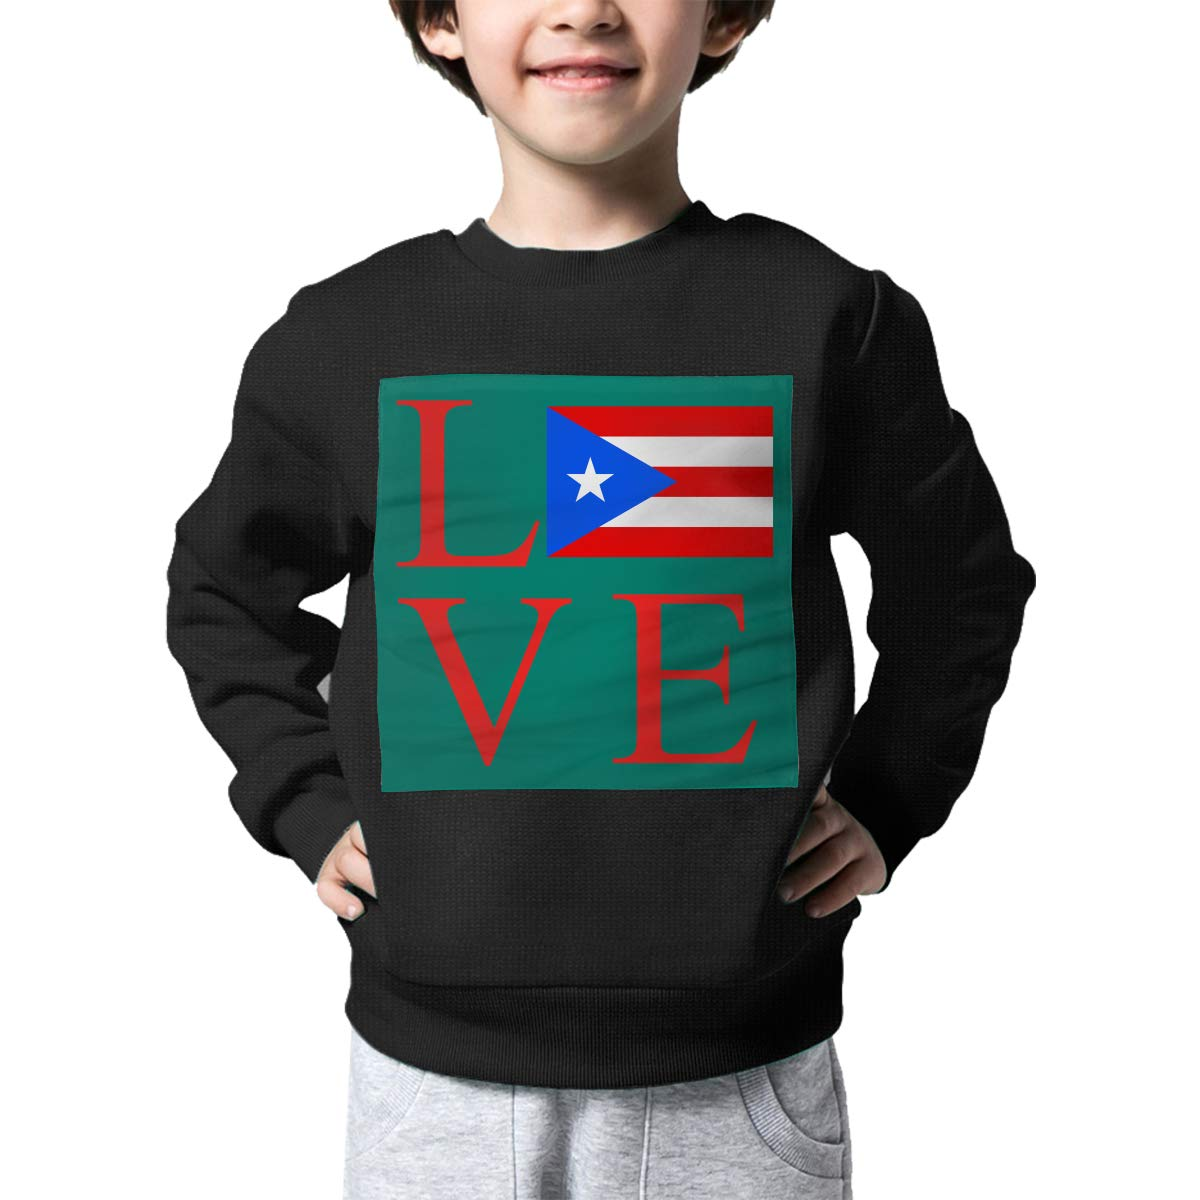 Love Puerto Rico Flag Print Baby Boys Childrens Crew Neck Sweater Long Sleeve Soft Knit Top Blouse